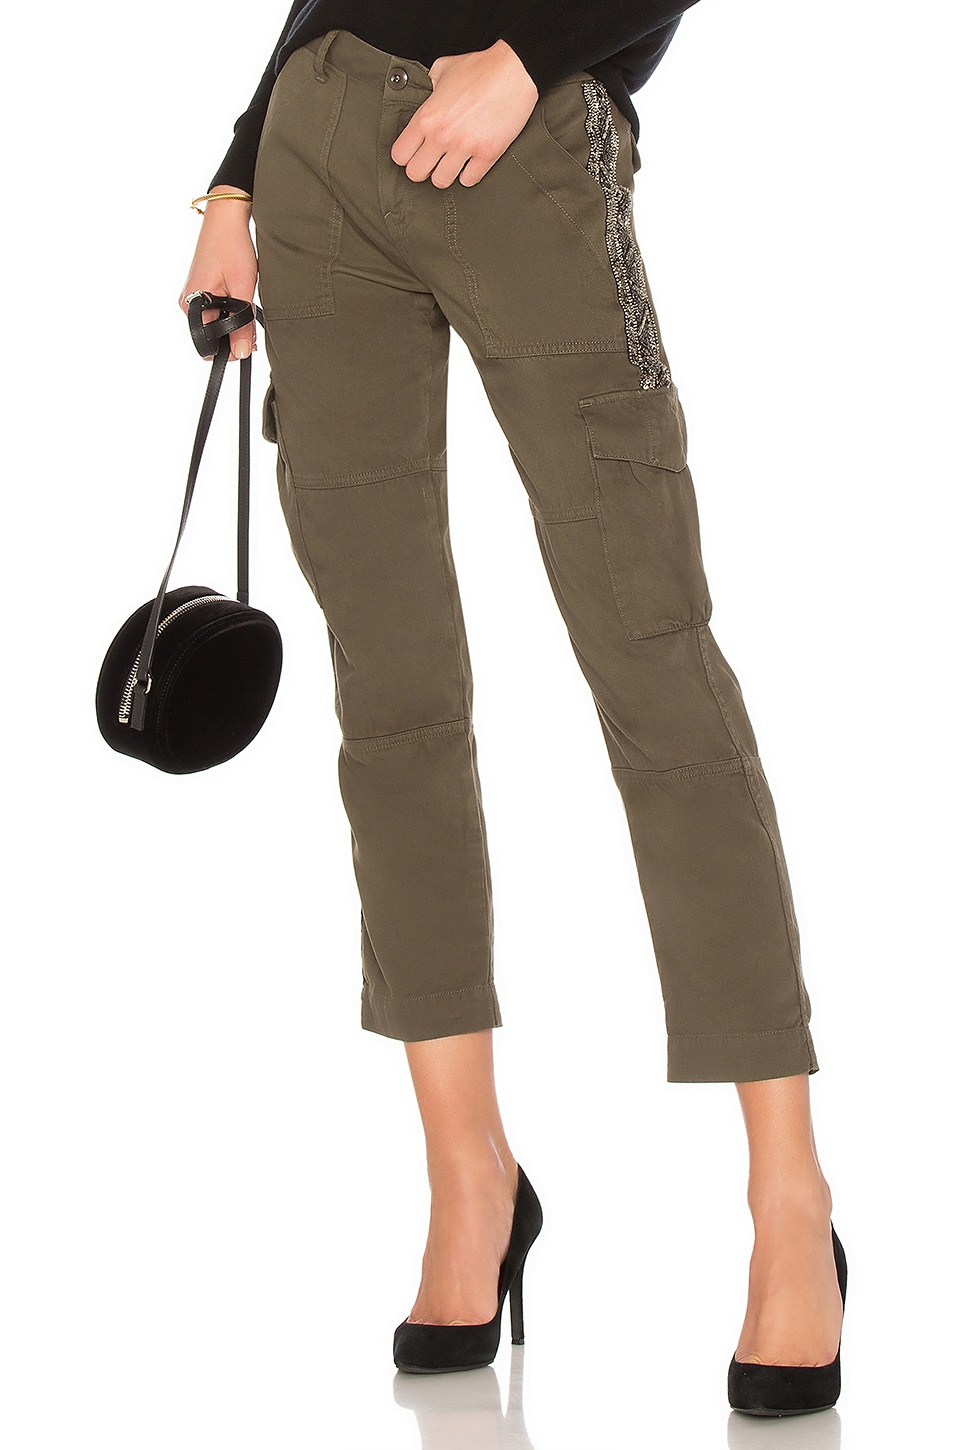 Joie Embellished Cargo Pant in Fatigue